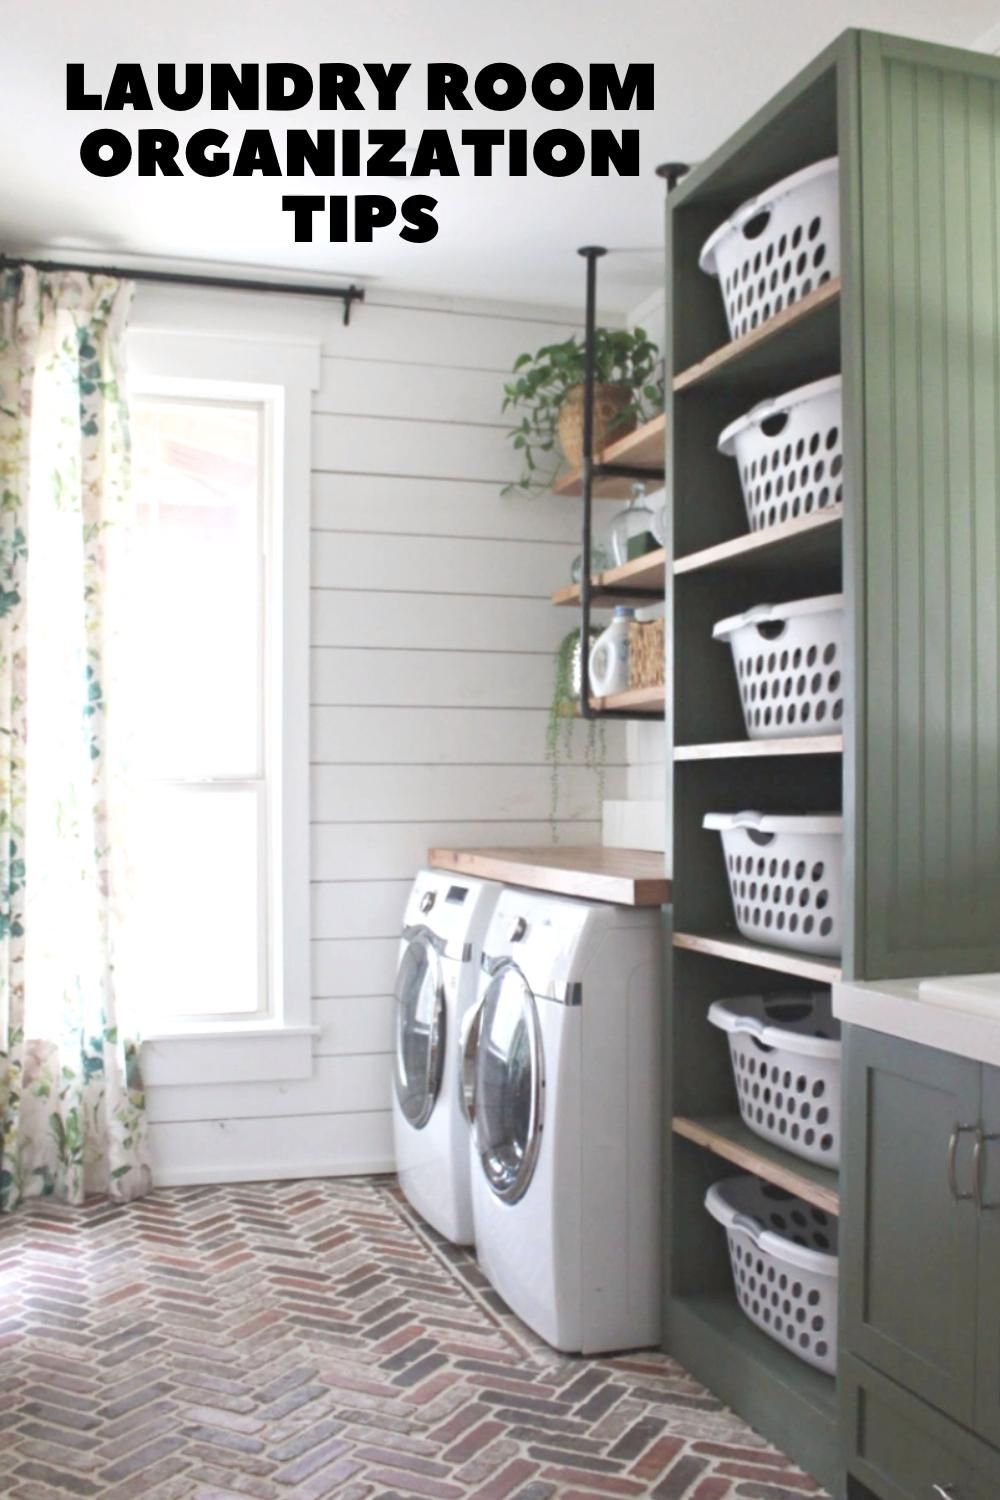 Laundry Room Organization Tips For Your Home